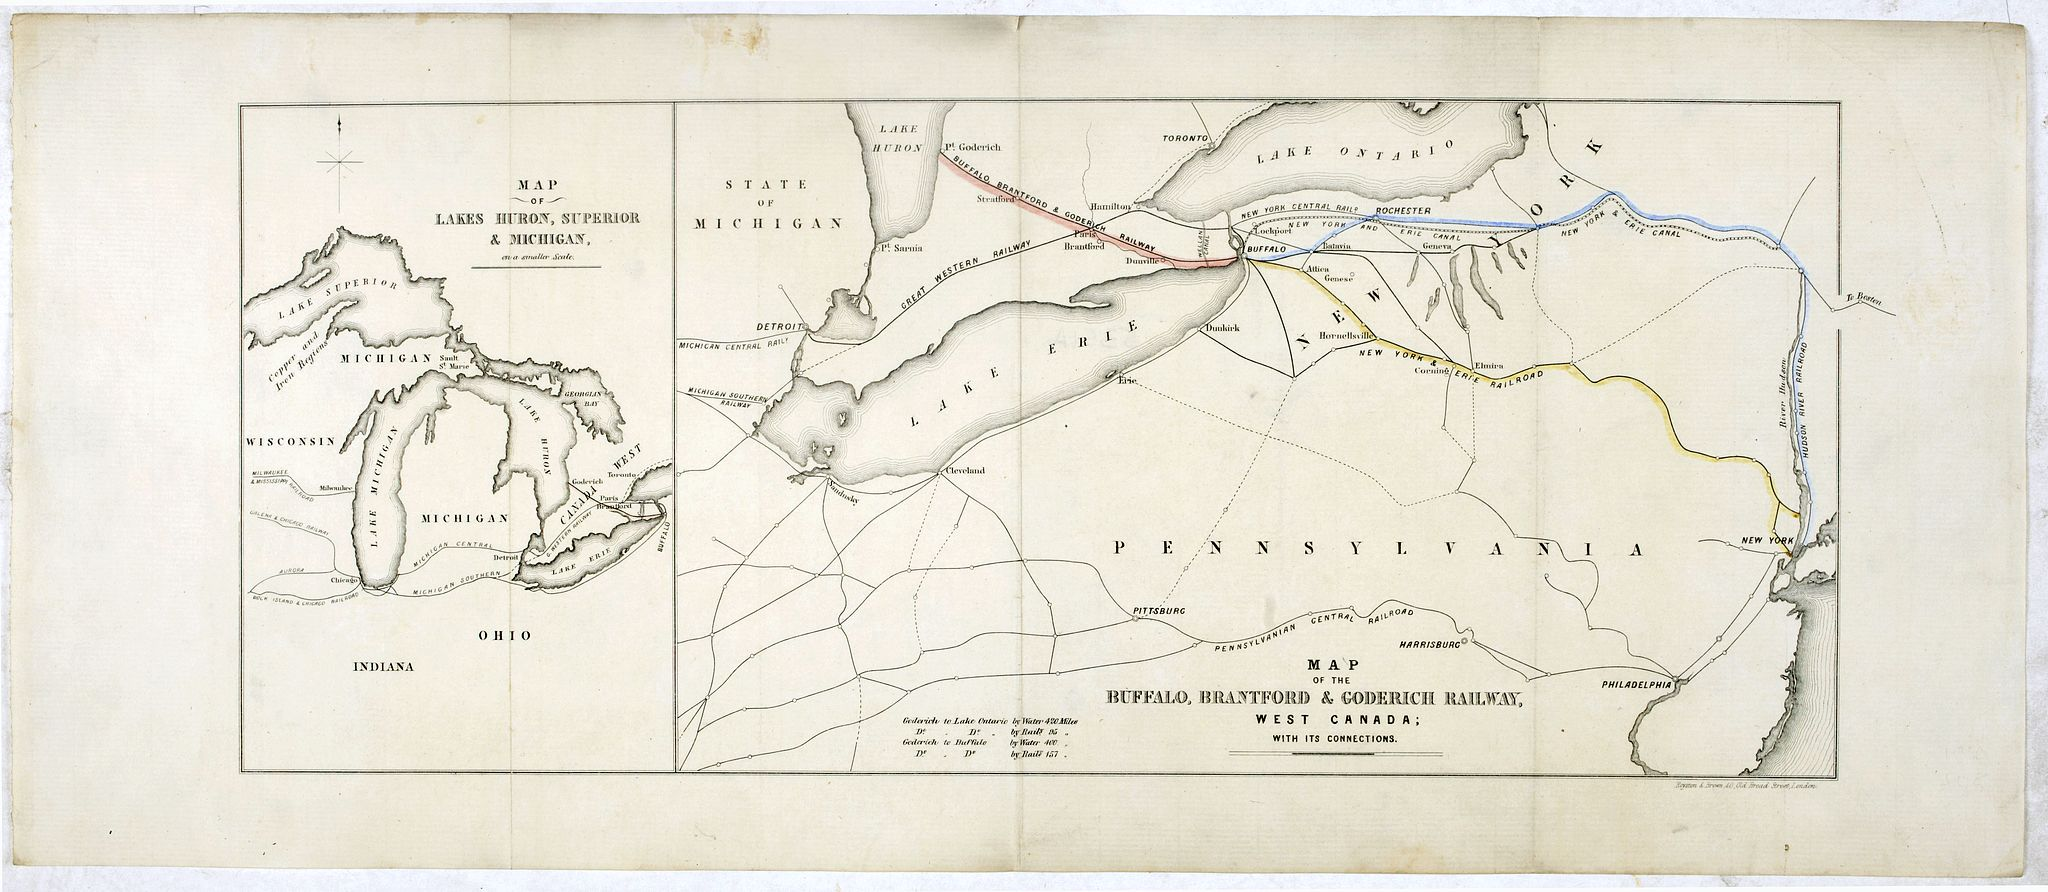 ROYSTON & BROWN -  Map of lakes Huron, superior & Michigan, on a smaller scale. / Map of the Buffalo, Brantford & Goderich railway west Canada with its connections